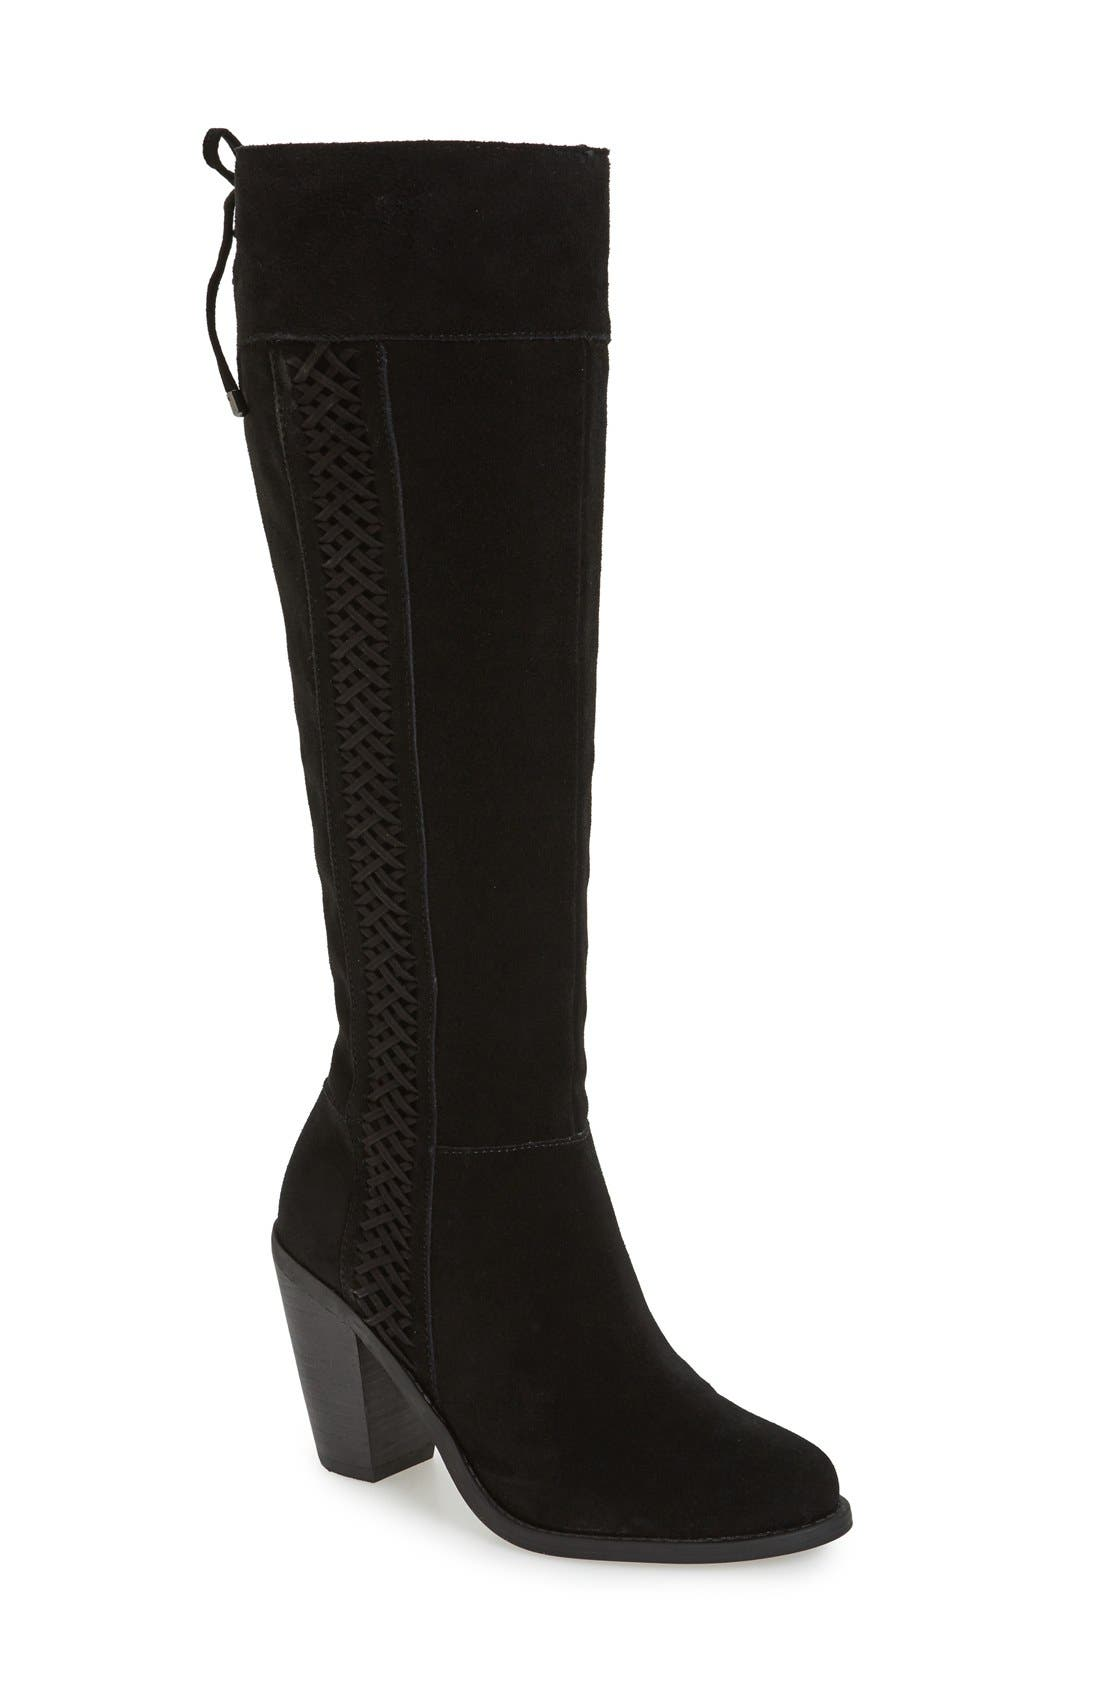 Ciarah Knee High Boot,                         Main,                         color, 001